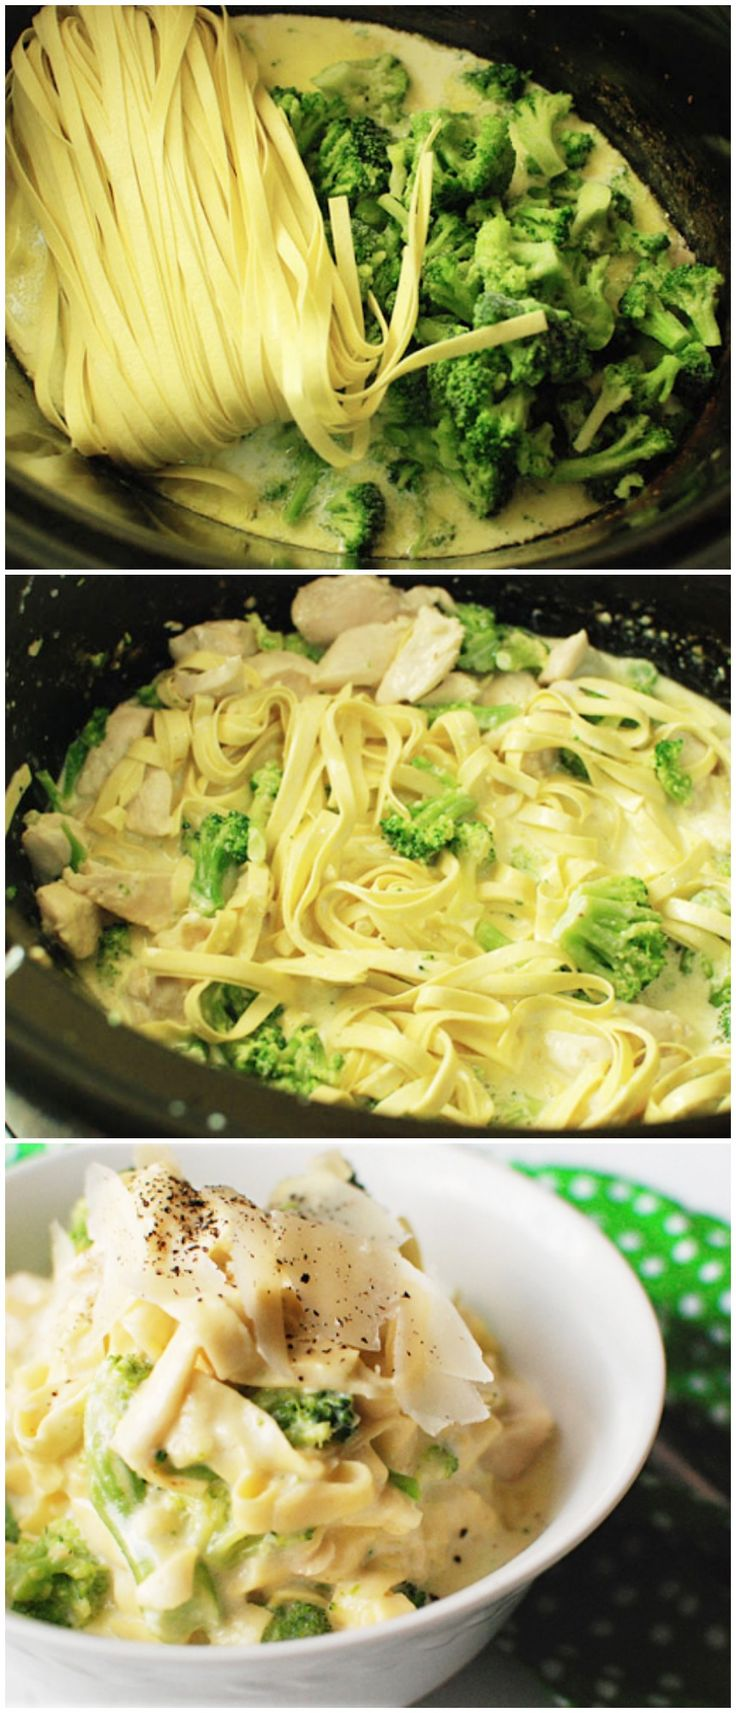 SlowCooker Chicken Fettuccine Alfredo